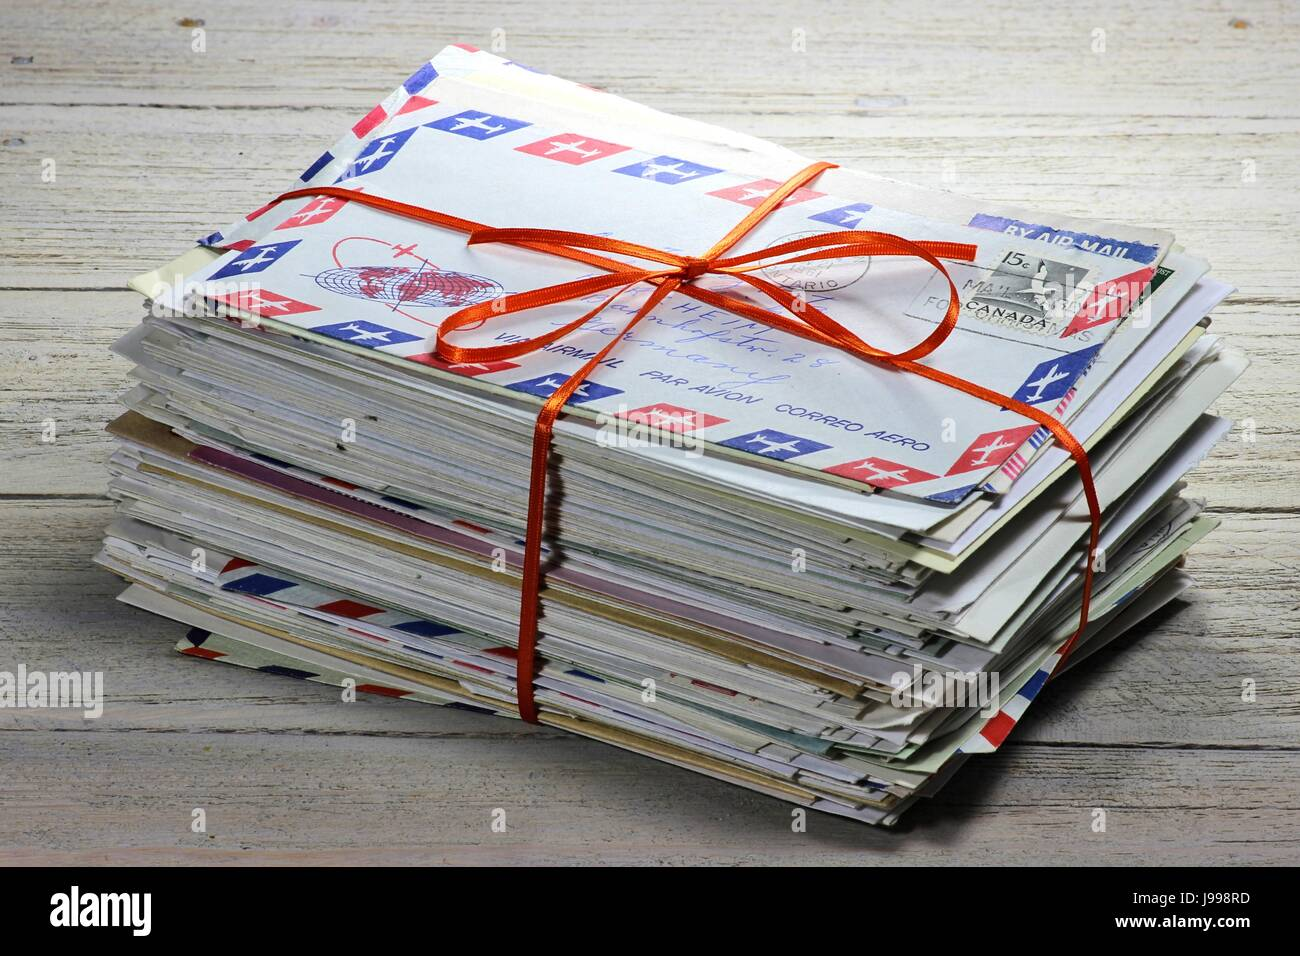 bundle of old letters on wooden background - Stock Image